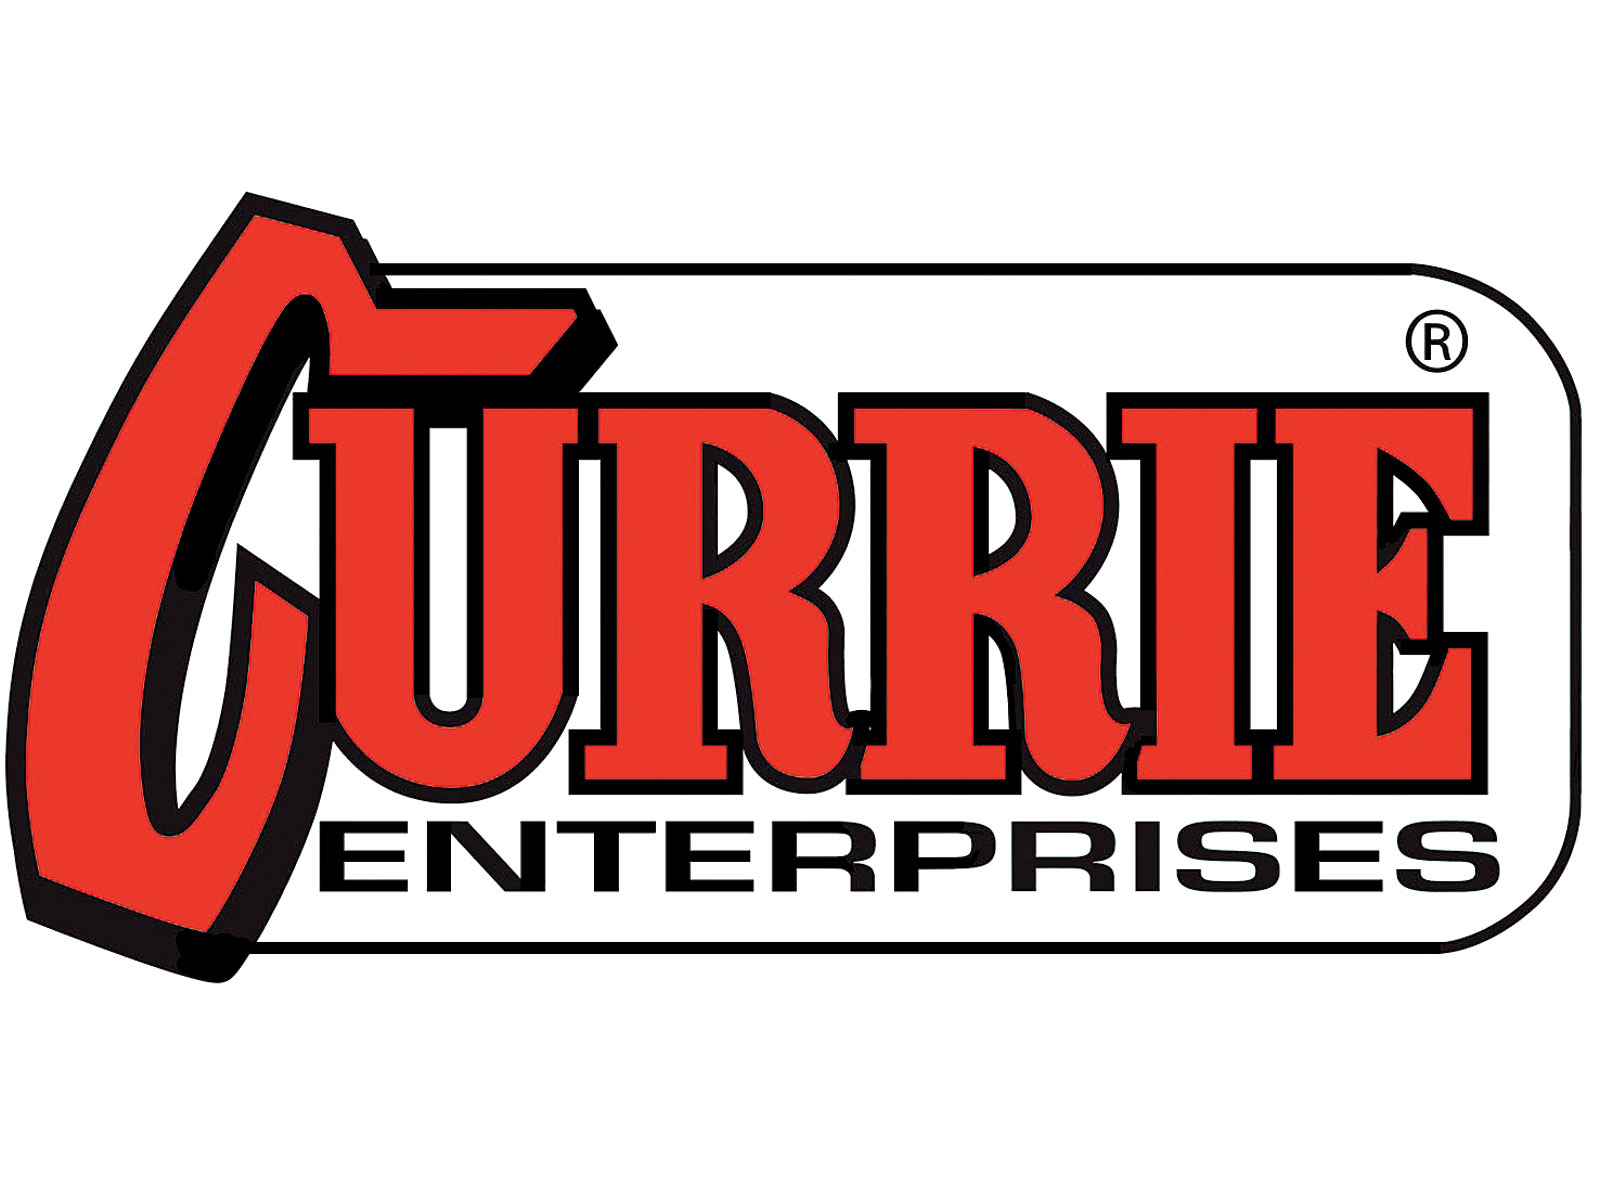 currie-enterprises-logo-2016.jpg